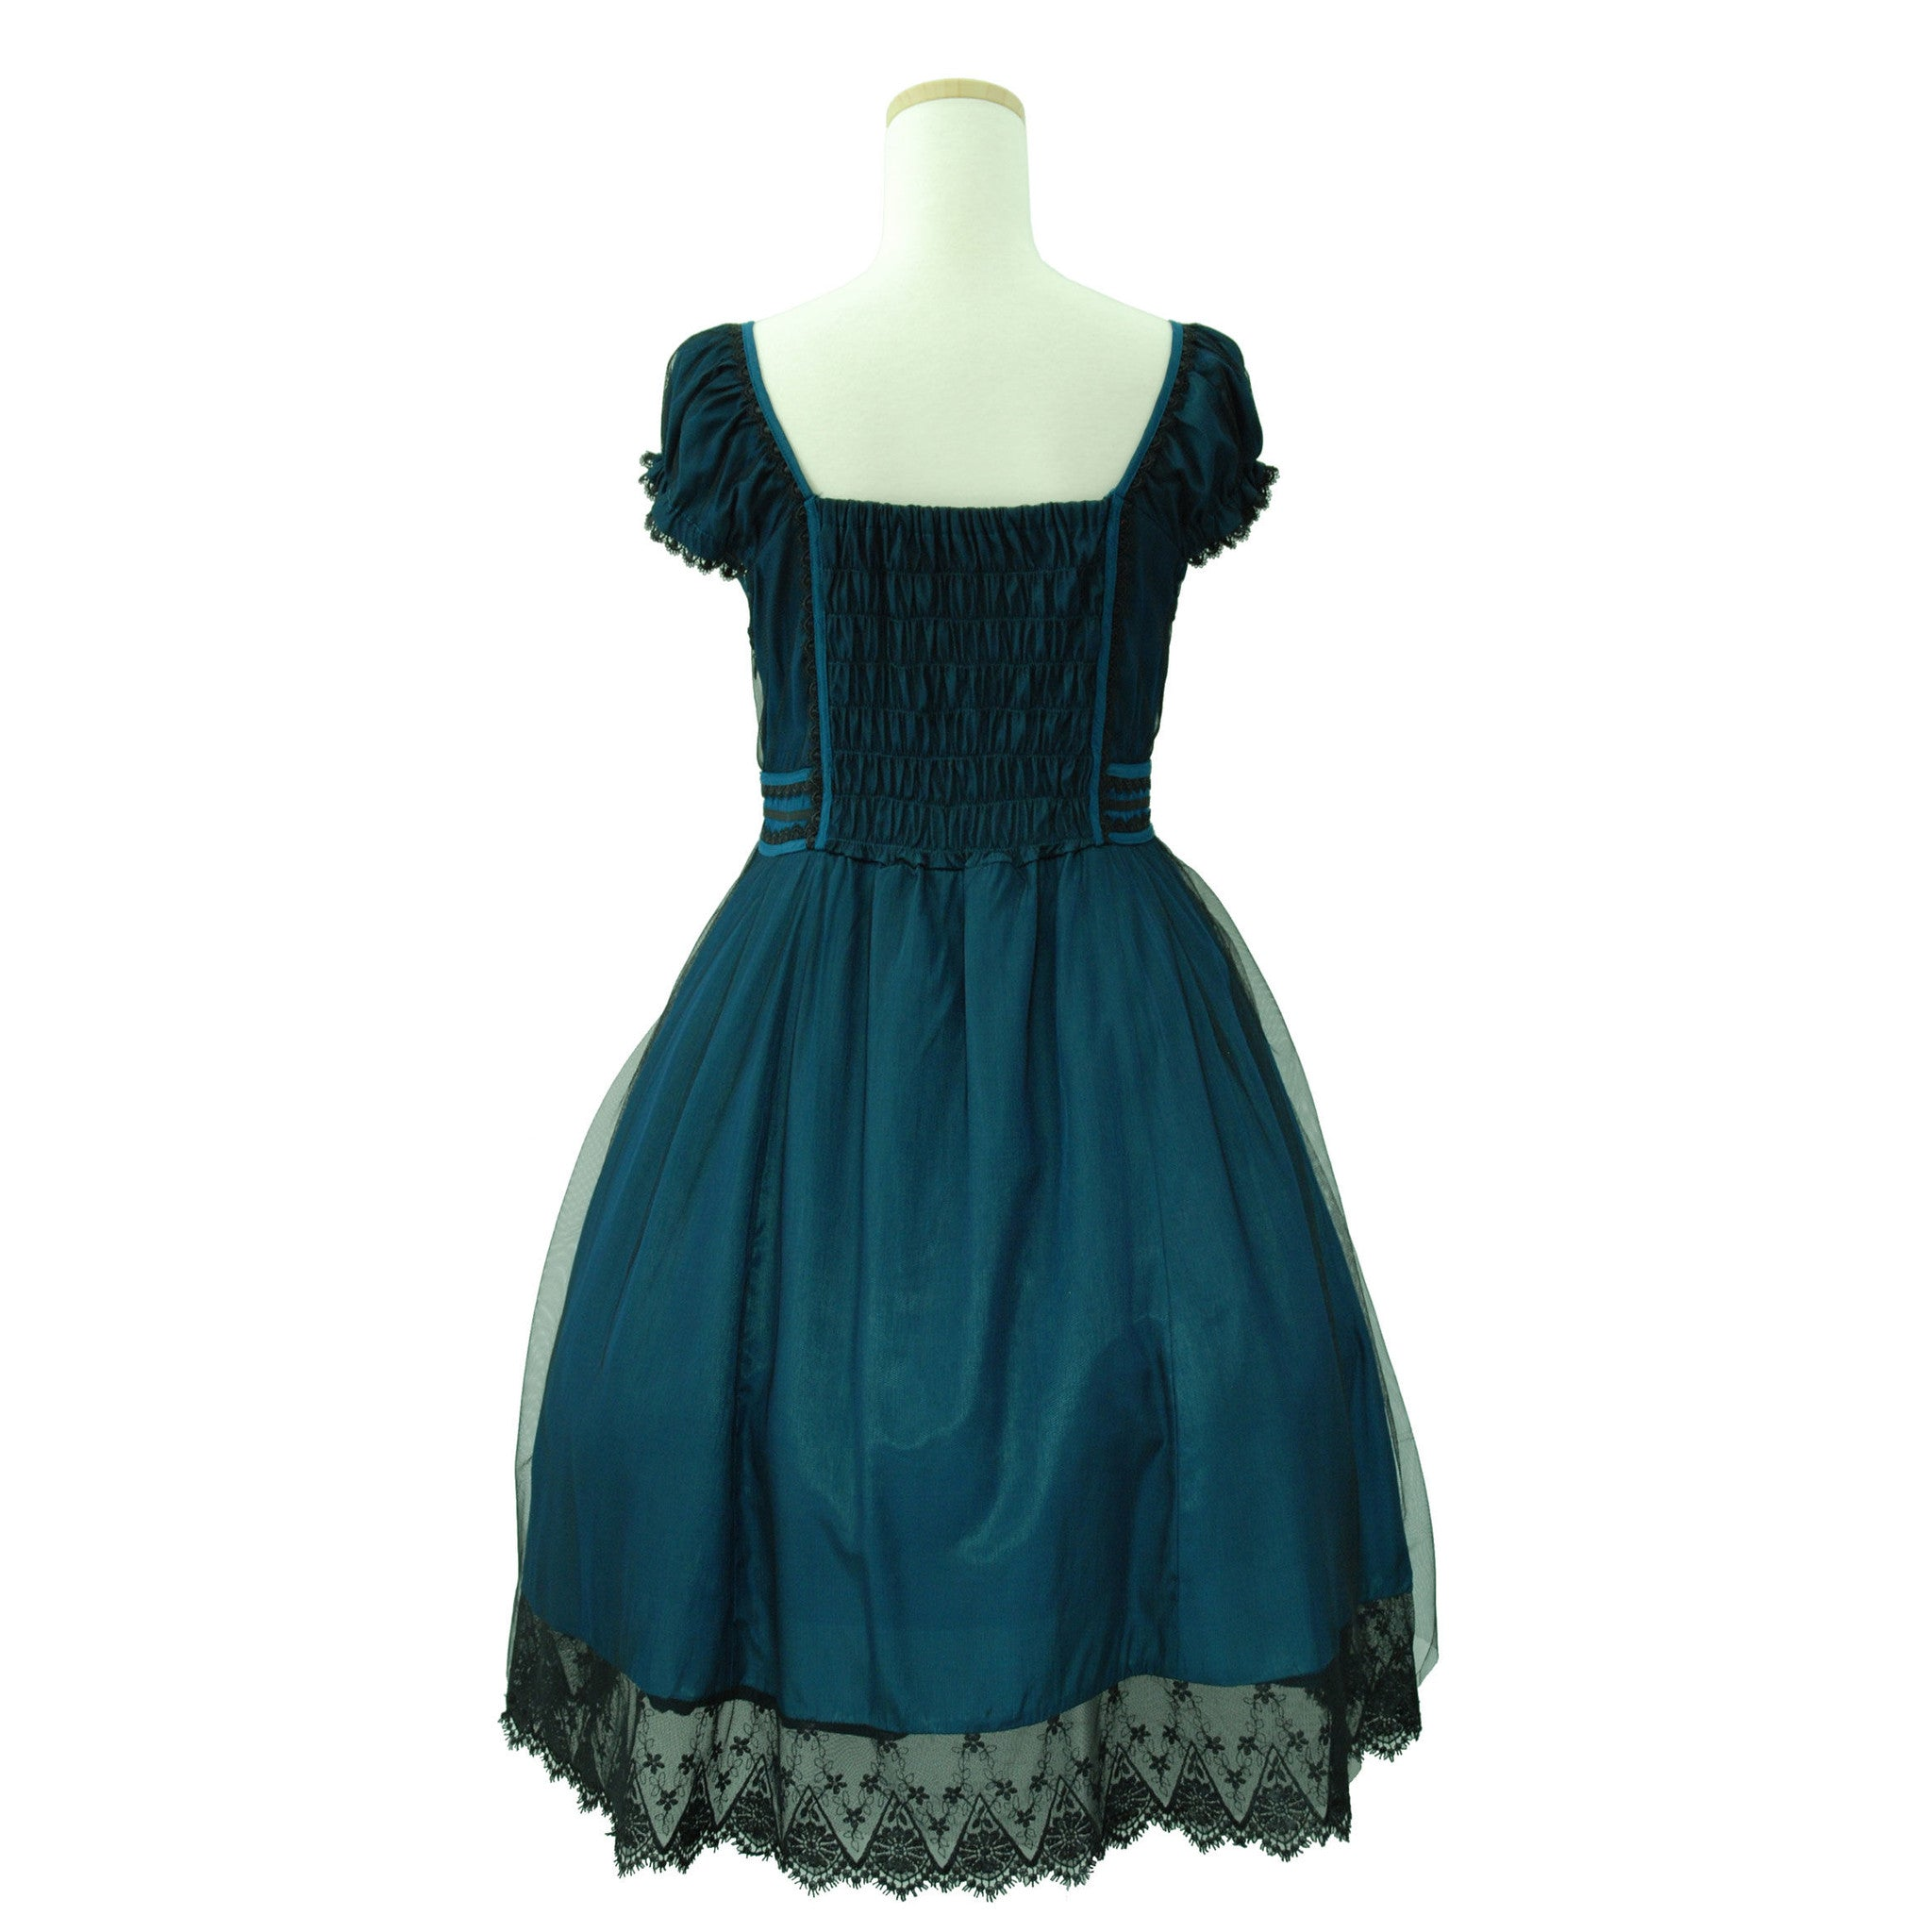 "Sheglit ""Tulle Dress(emerald blue)"""